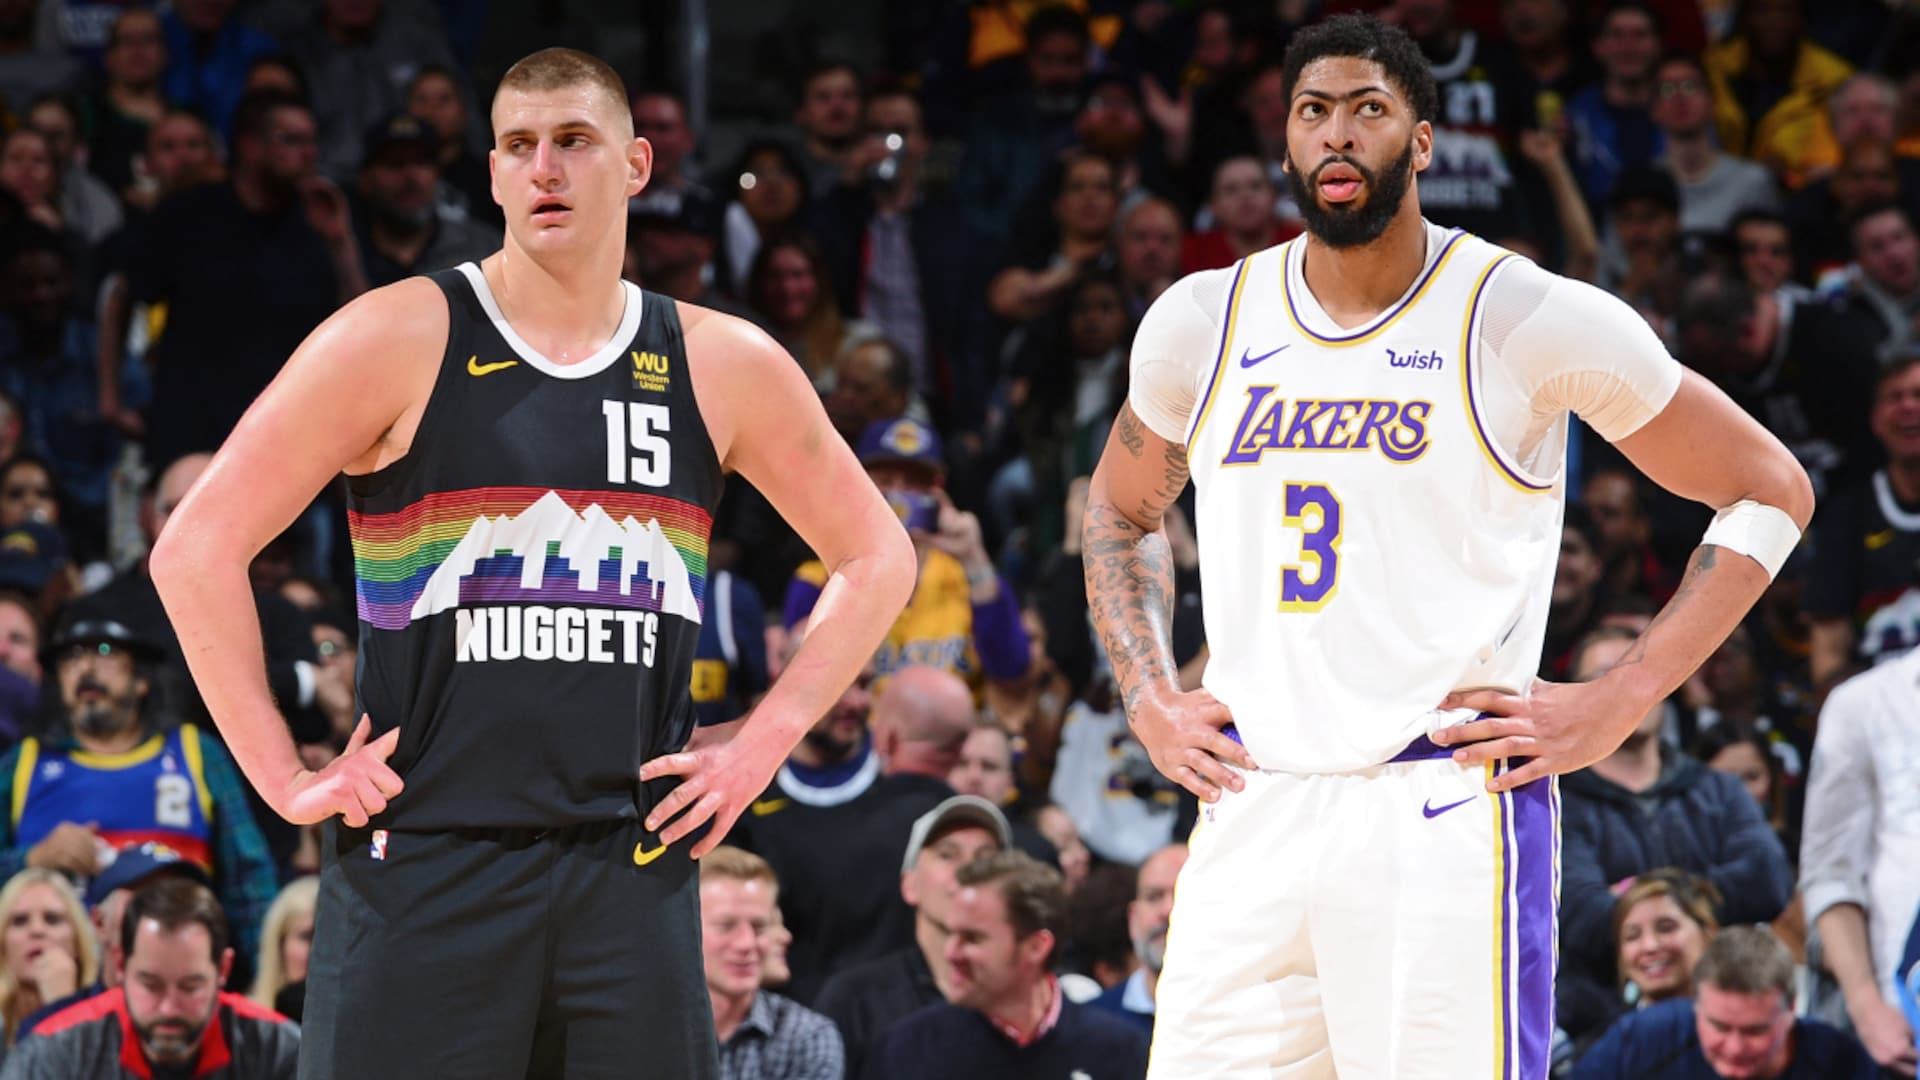 Series Preview: Battle of dynamic duos favors Lakers